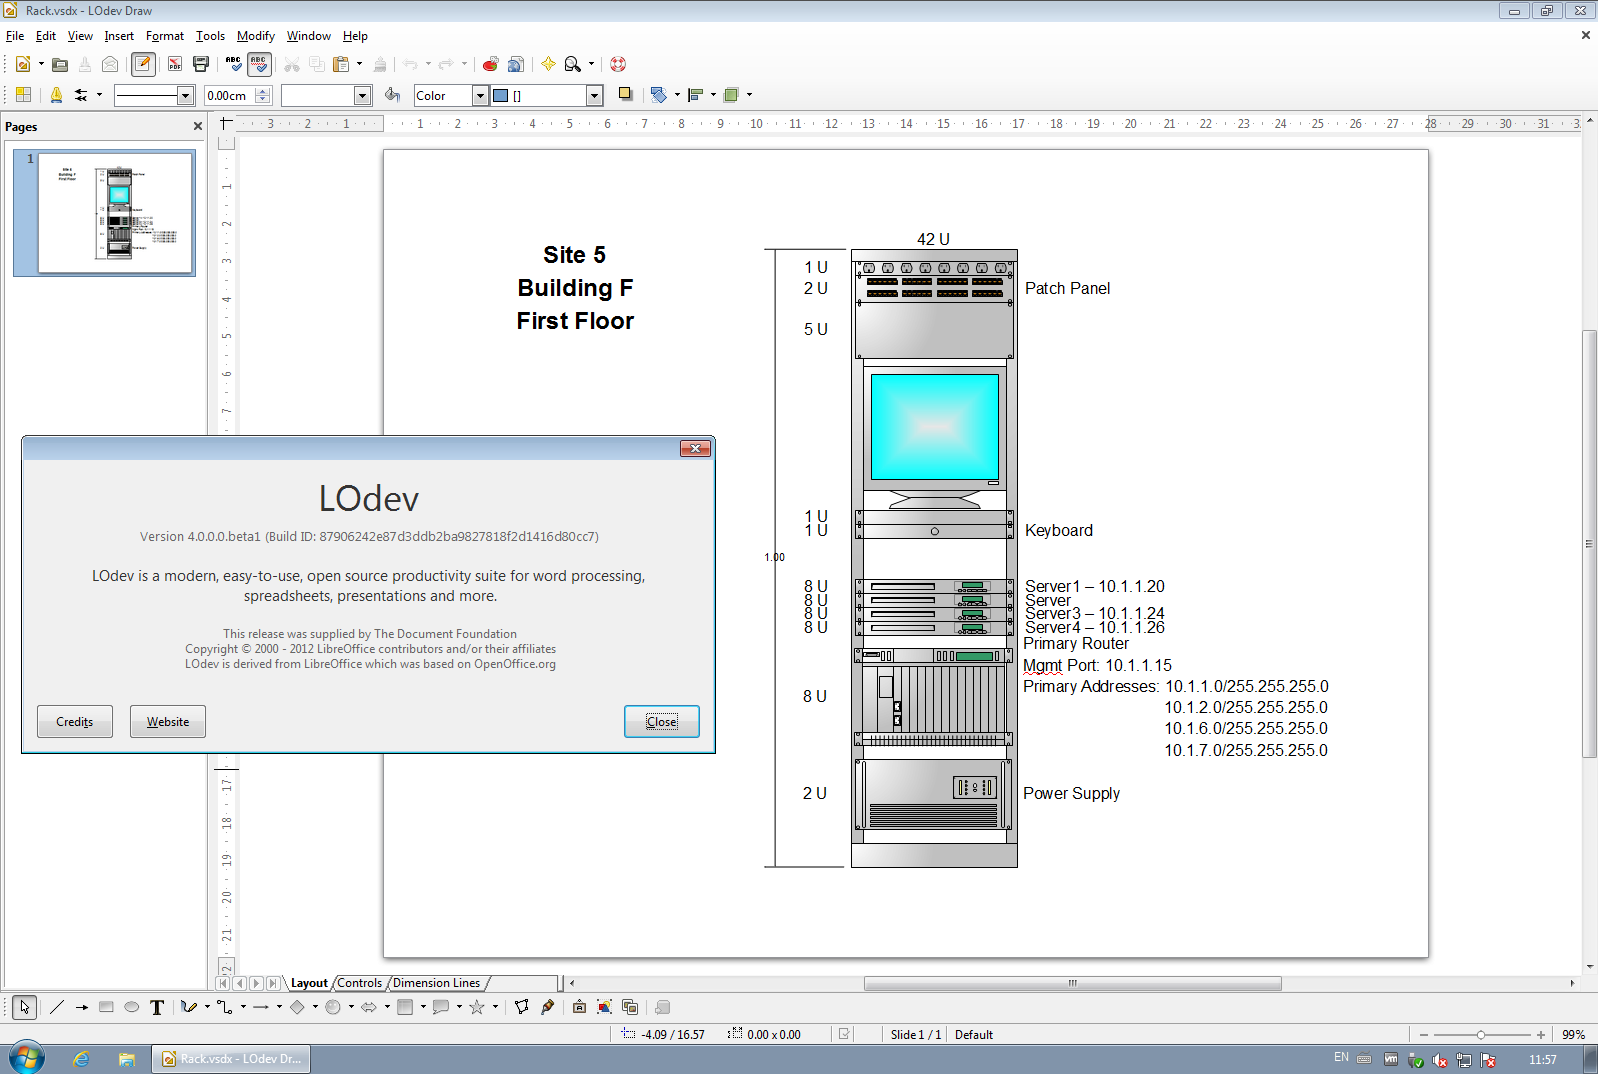 how to open vsdx file in visio 2003